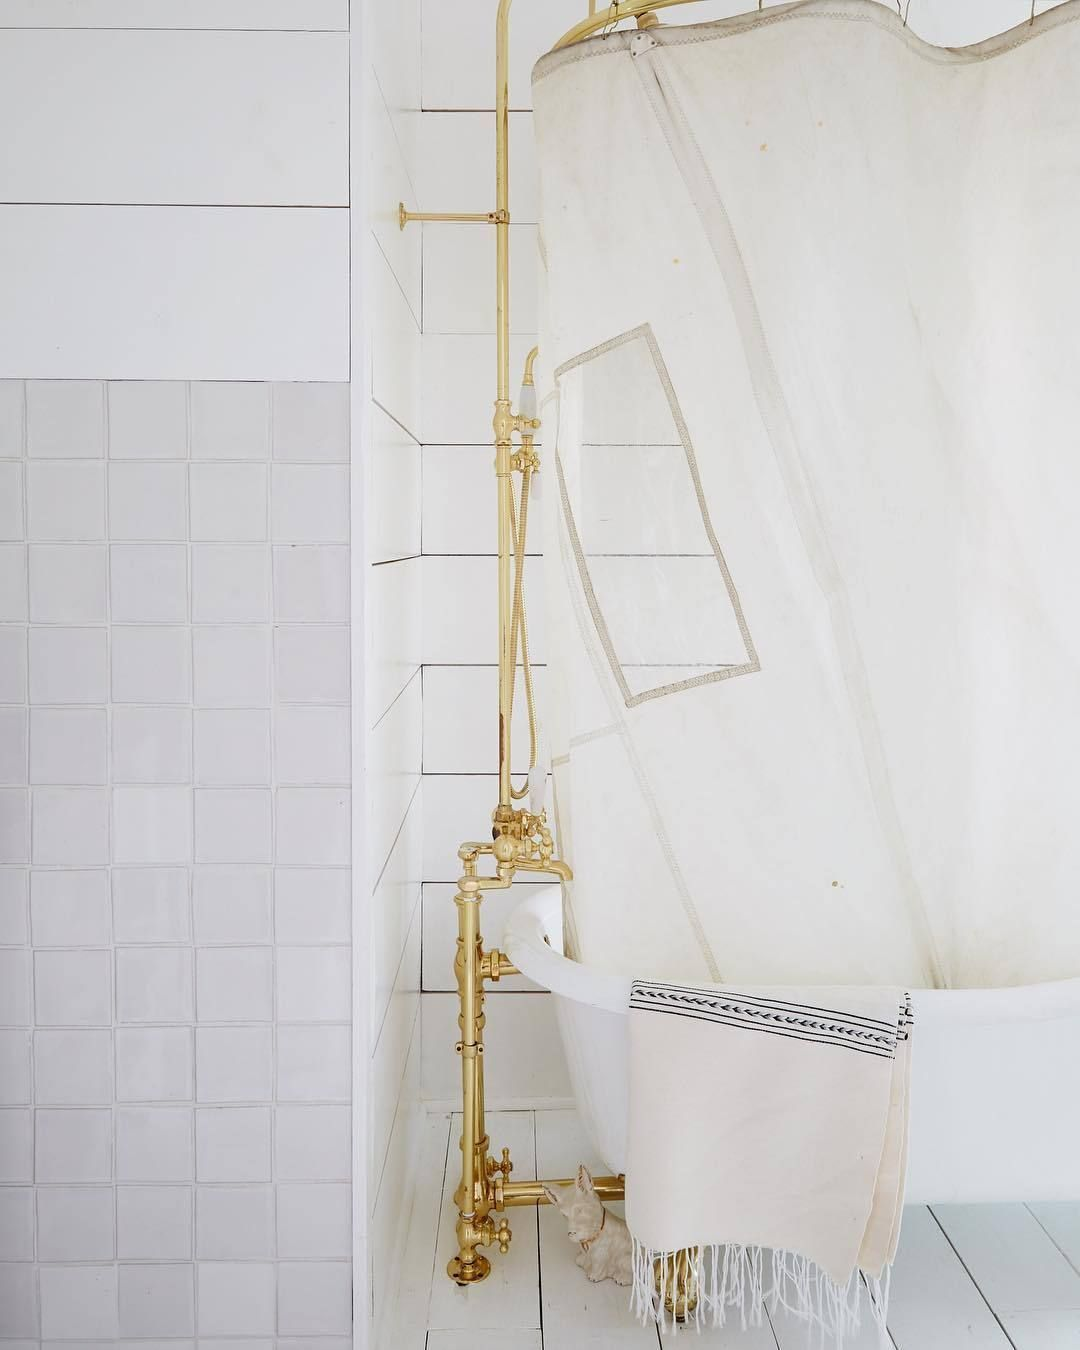 A sail used as a shower curtain(via Leanne Ford Interiors) #leannefordinteriors A sail used as a shower curtain(via Leanne Ford Interiors) #leannefordinteriors A sail used as a shower curtain(via Leanne Ford Interiors) #leannefordinteriors A sail used as a shower curtain(via Leanne Ford Interiors) #leannefordinteriors A sail used as a shower curtain(via Leanne Ford Interiors) #leannefordinteriors A sail used as a shower curtain(via Leanne Ford Interiors) #leannefordinteriors A sail used as a sho #leannefordinteriors